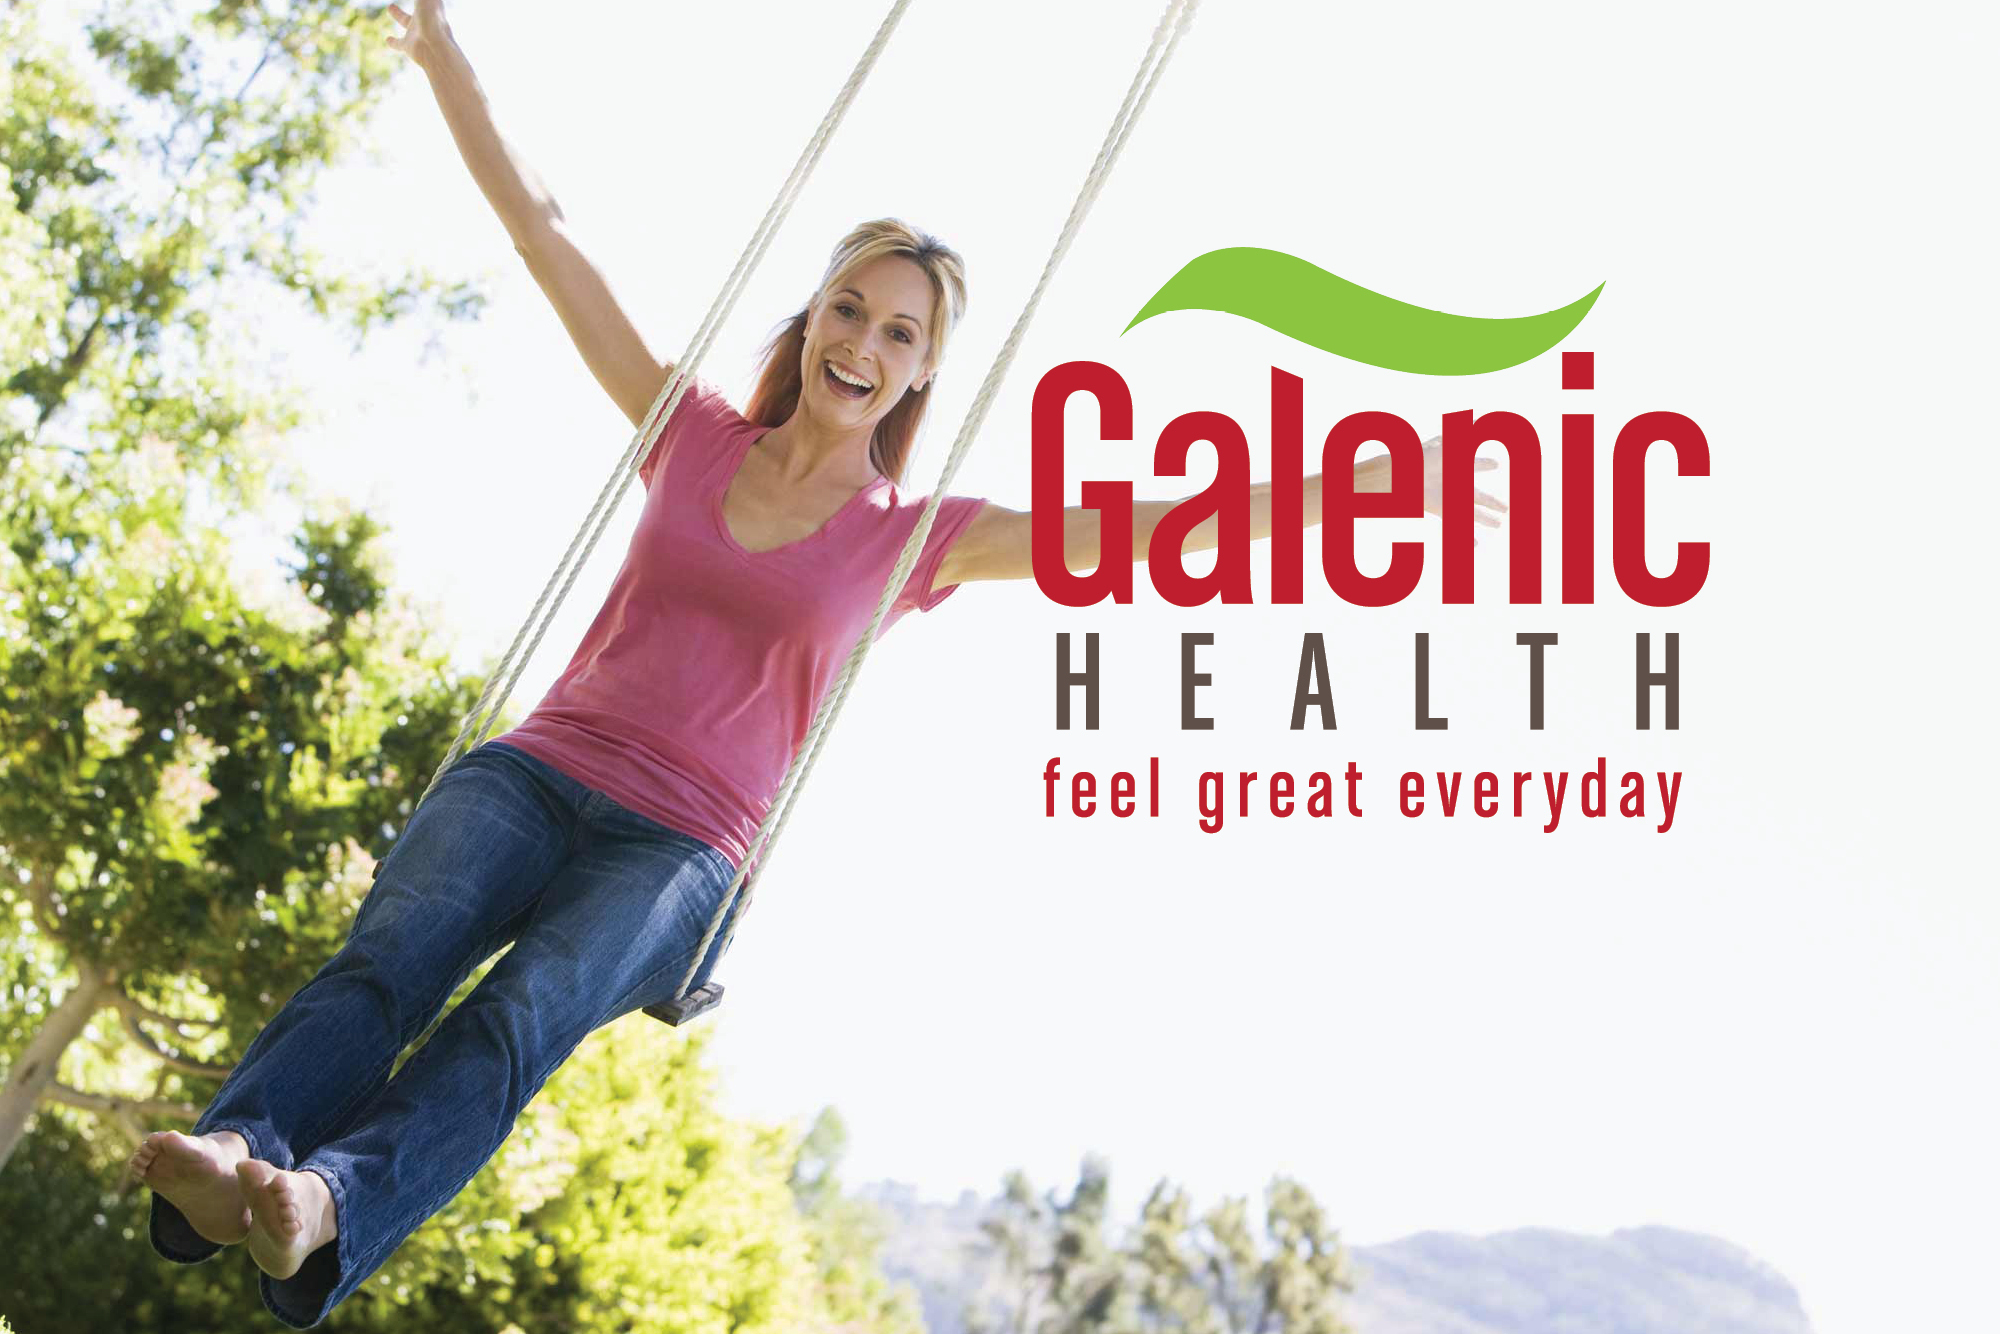 Galenic Health Cover image outlines